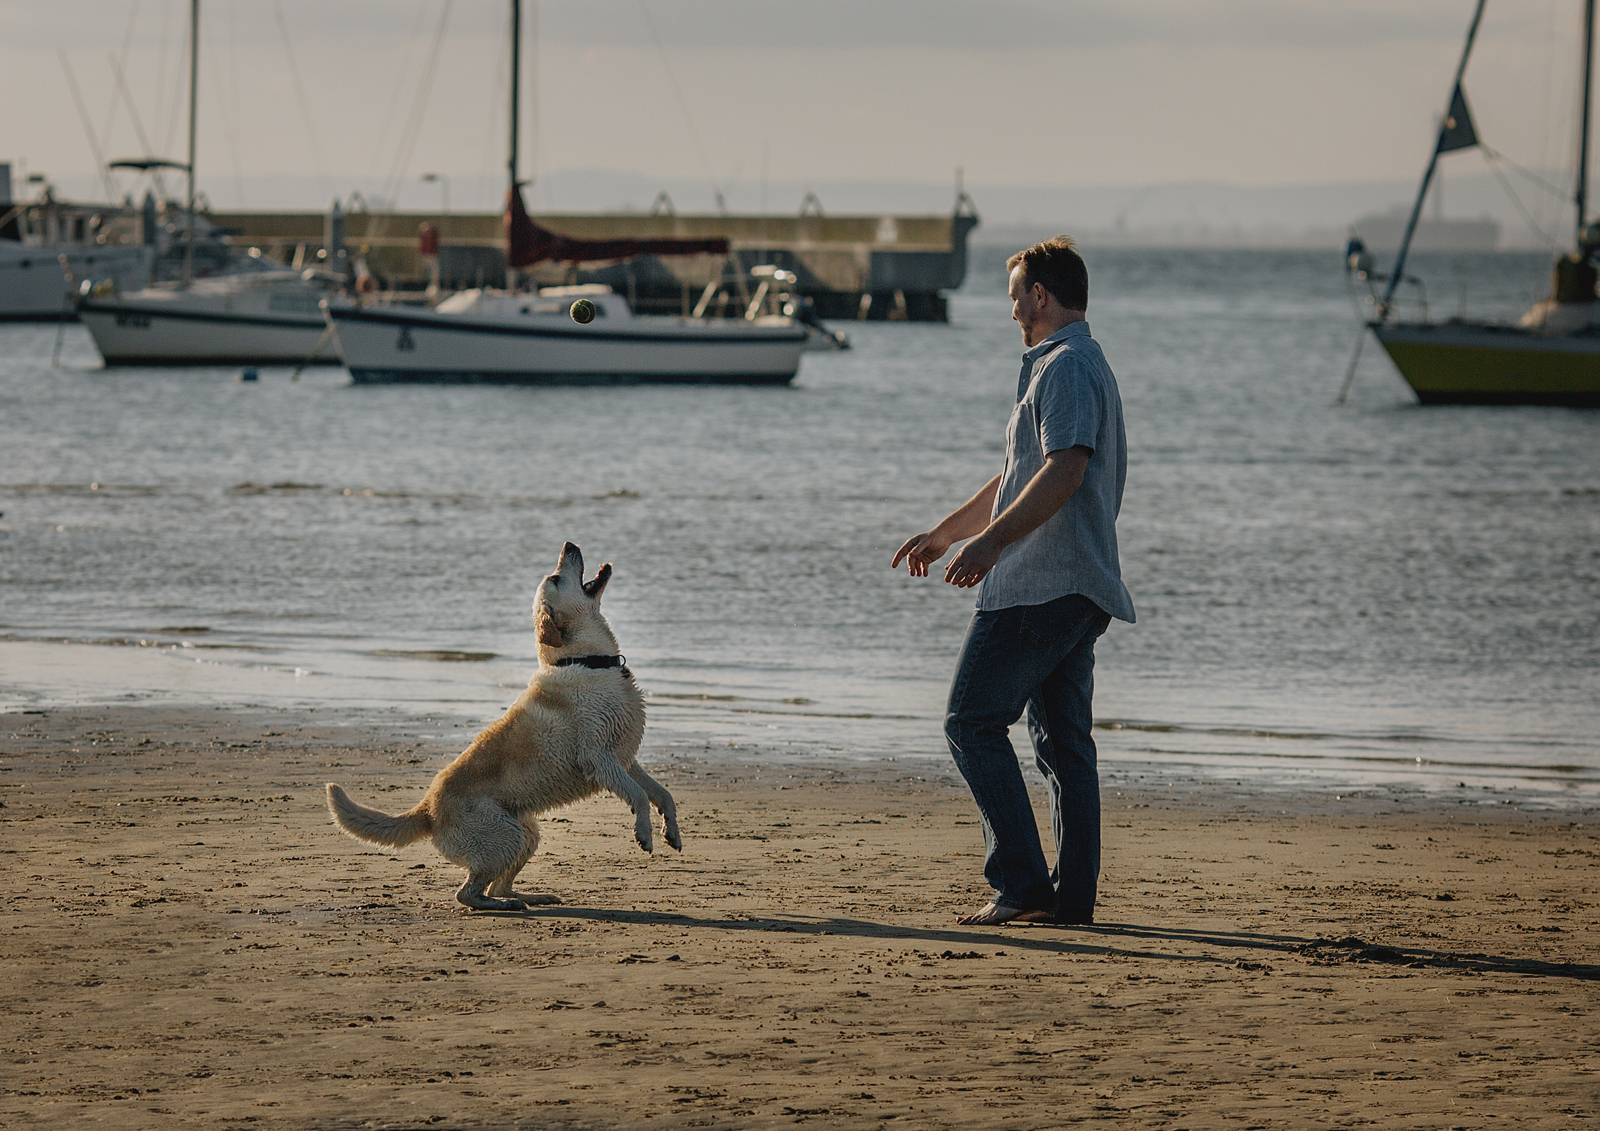 Throwing the ball for his dog